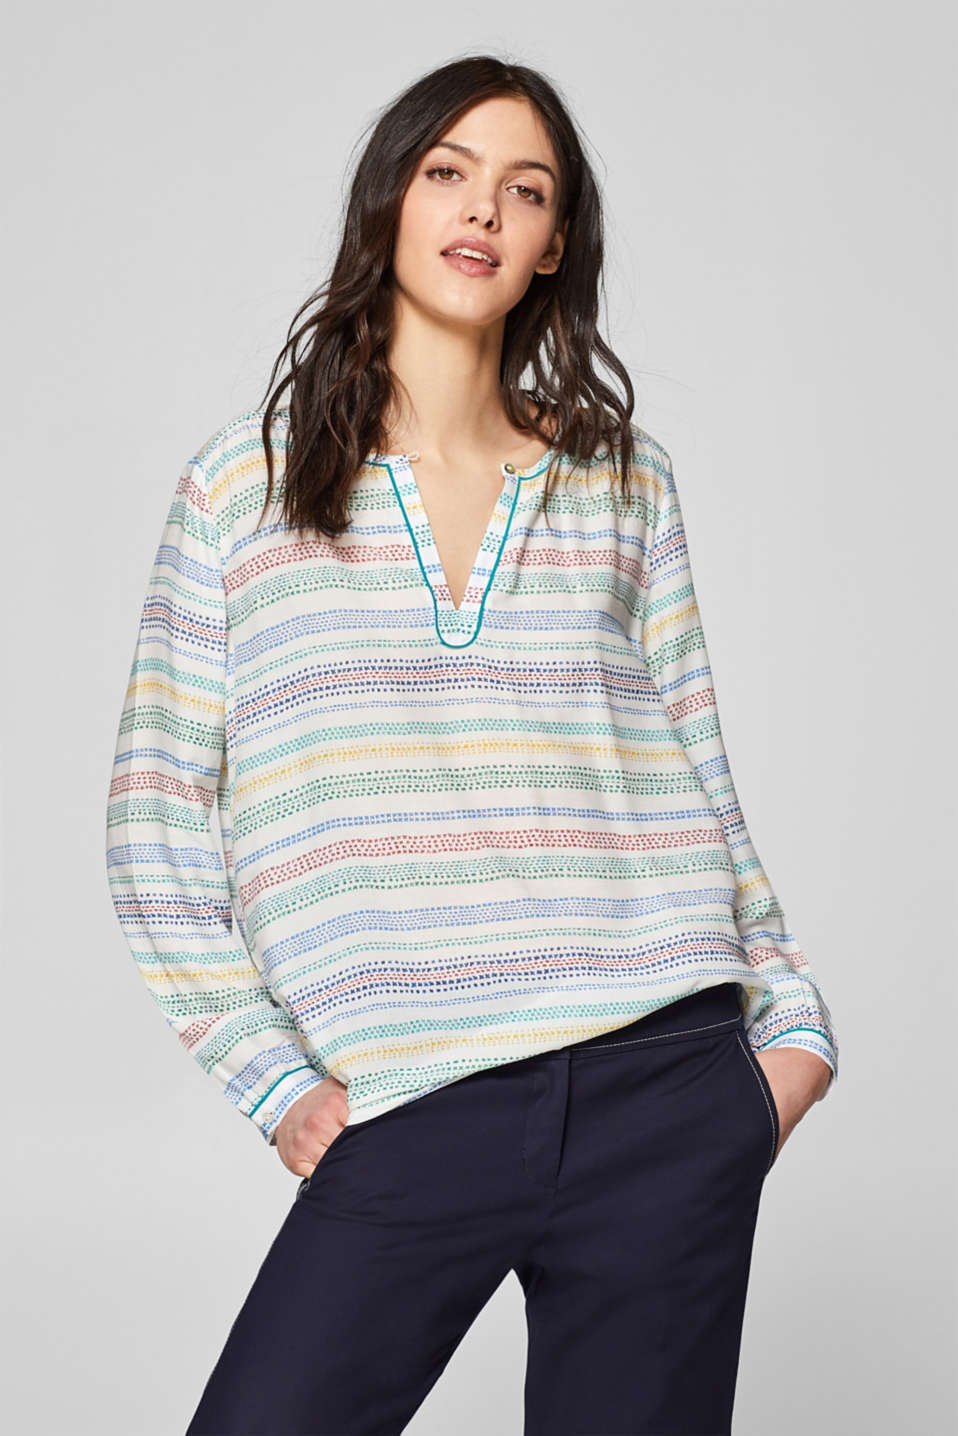 Esprit - Printed blouse with a decorated neckline